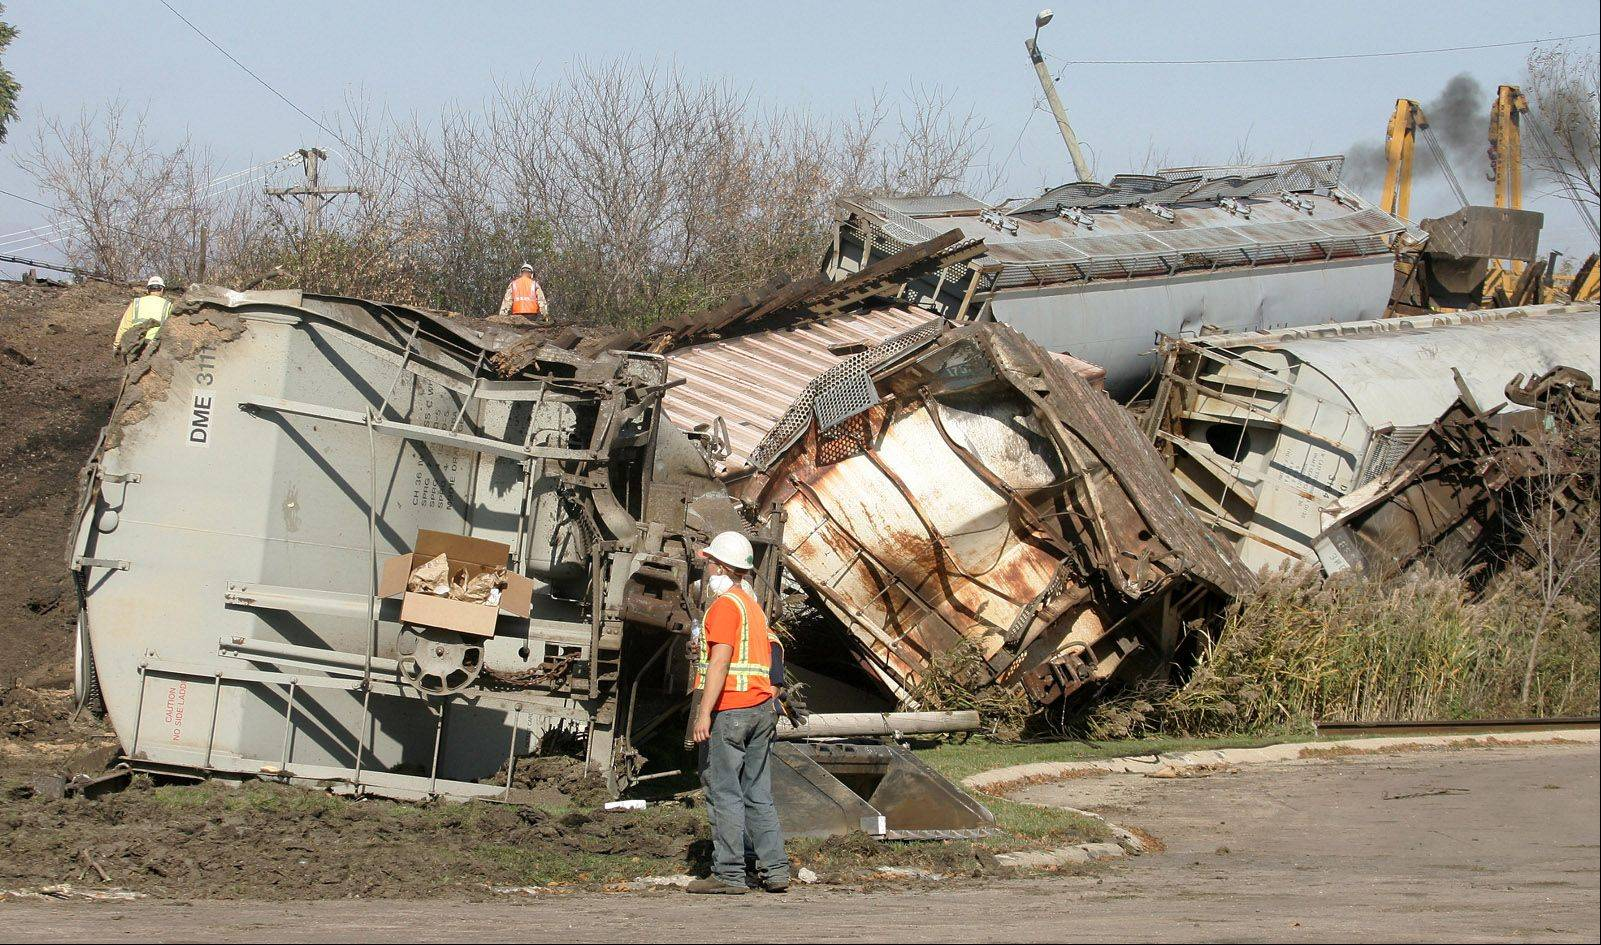 Suburbs don't want to play derailment odds